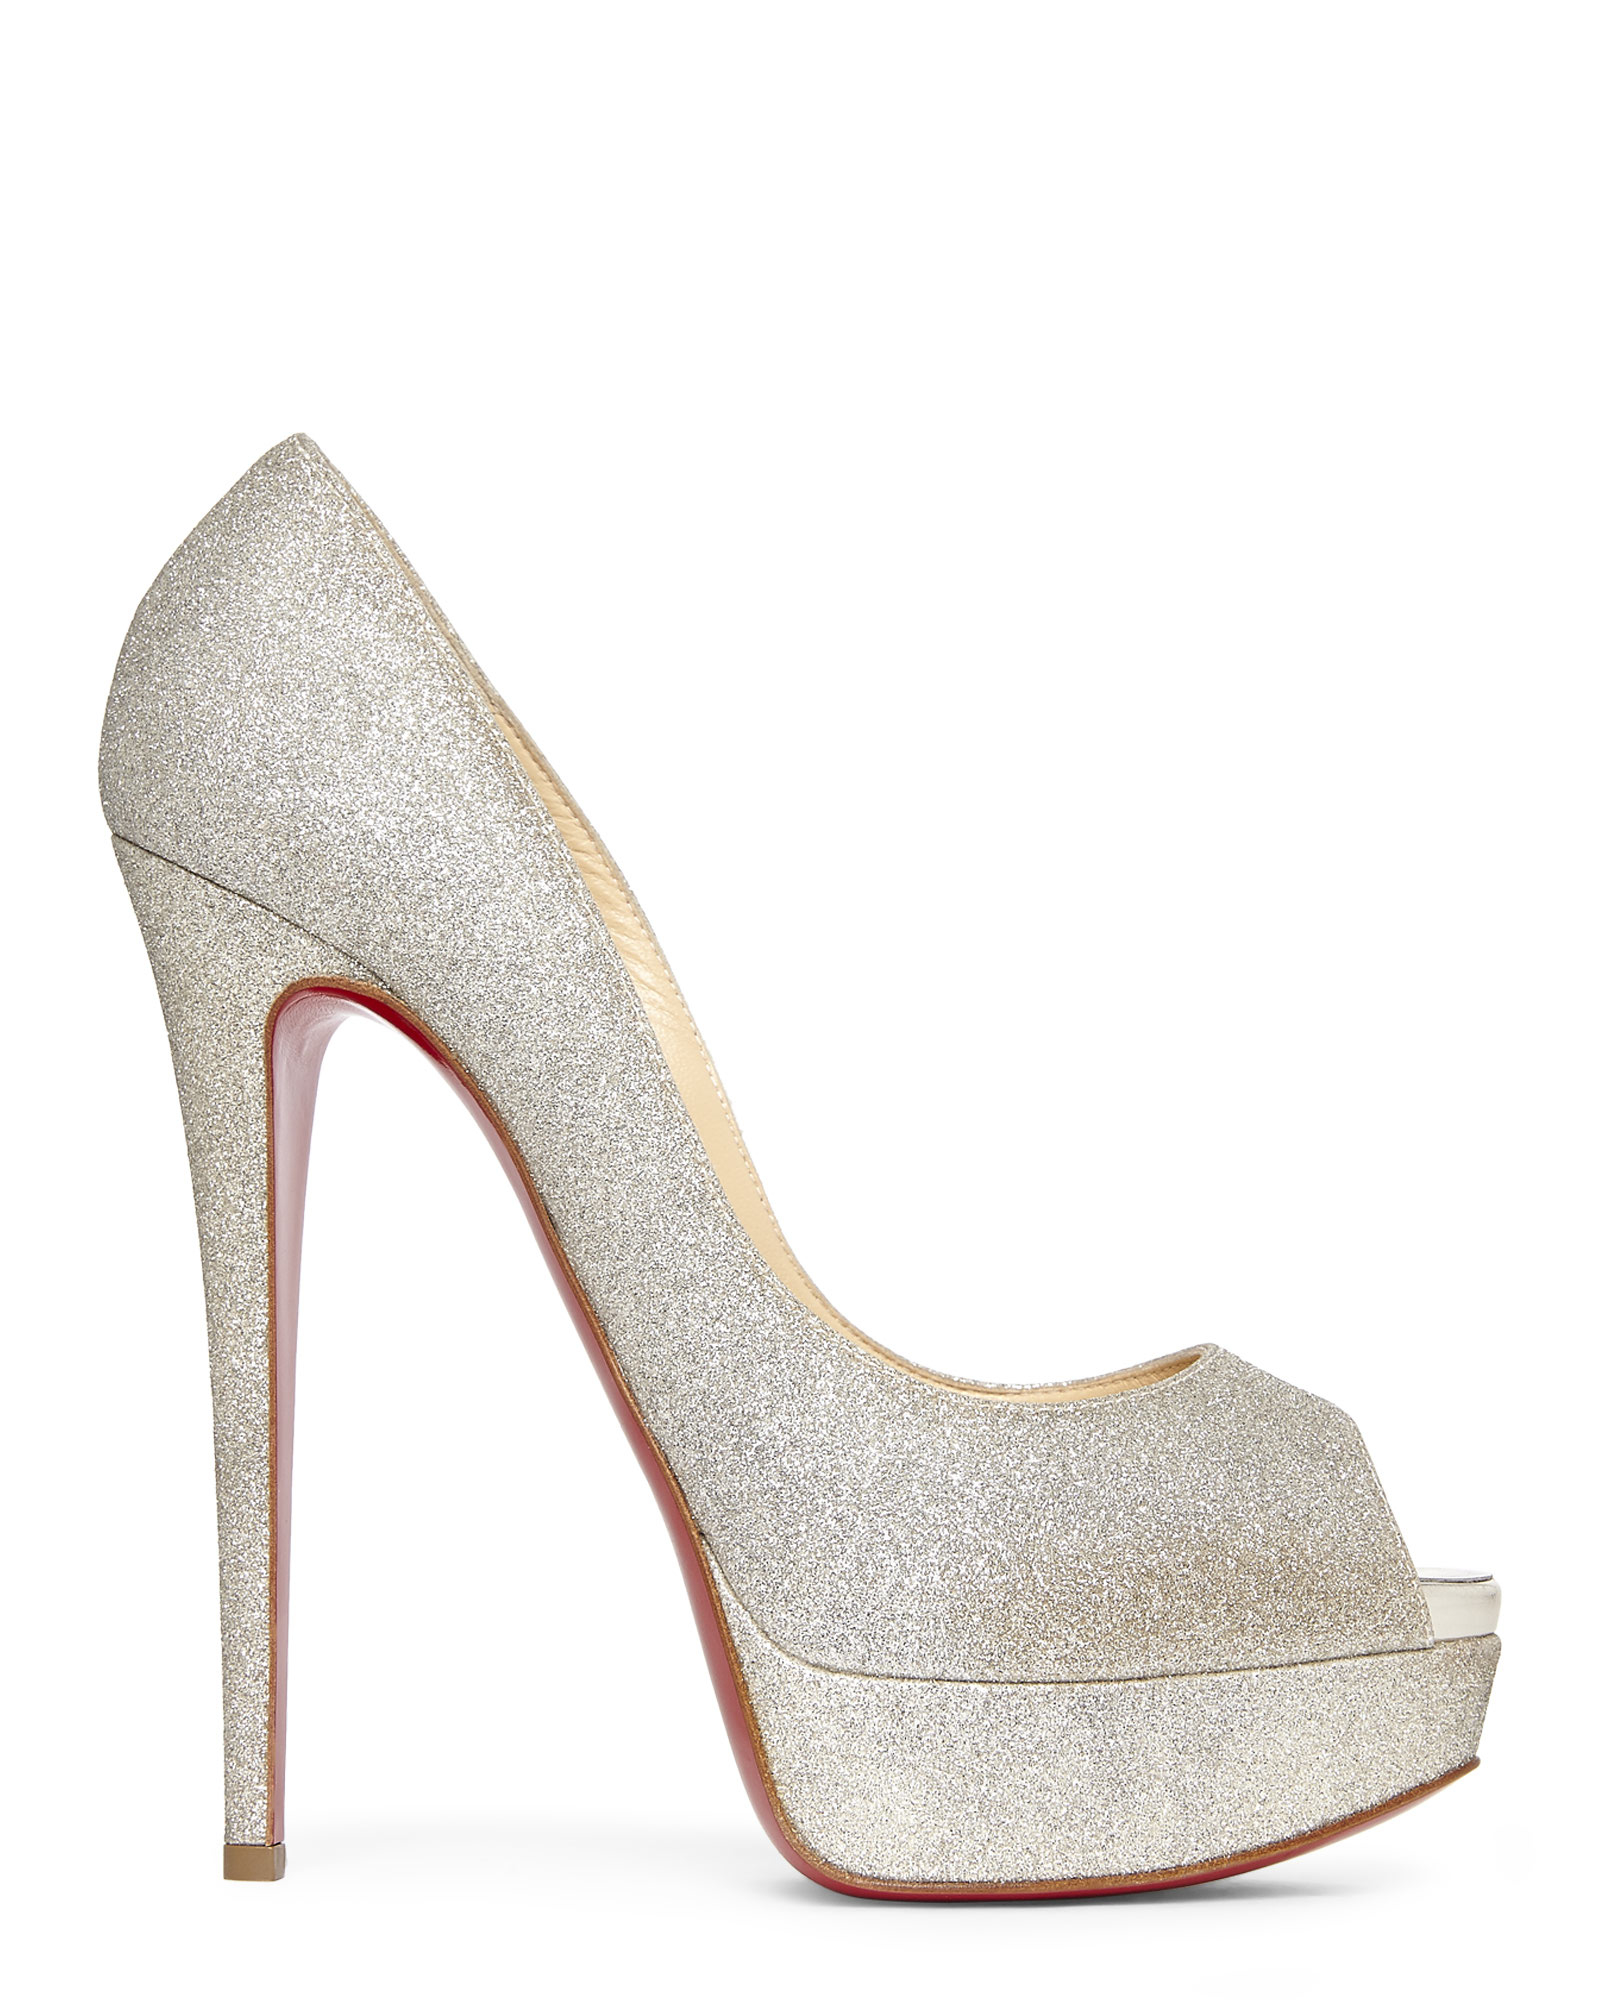 louis vuitton red bottom shoes price - christian louboutin Lady Peep Sling pumps Multicolor glitter ...